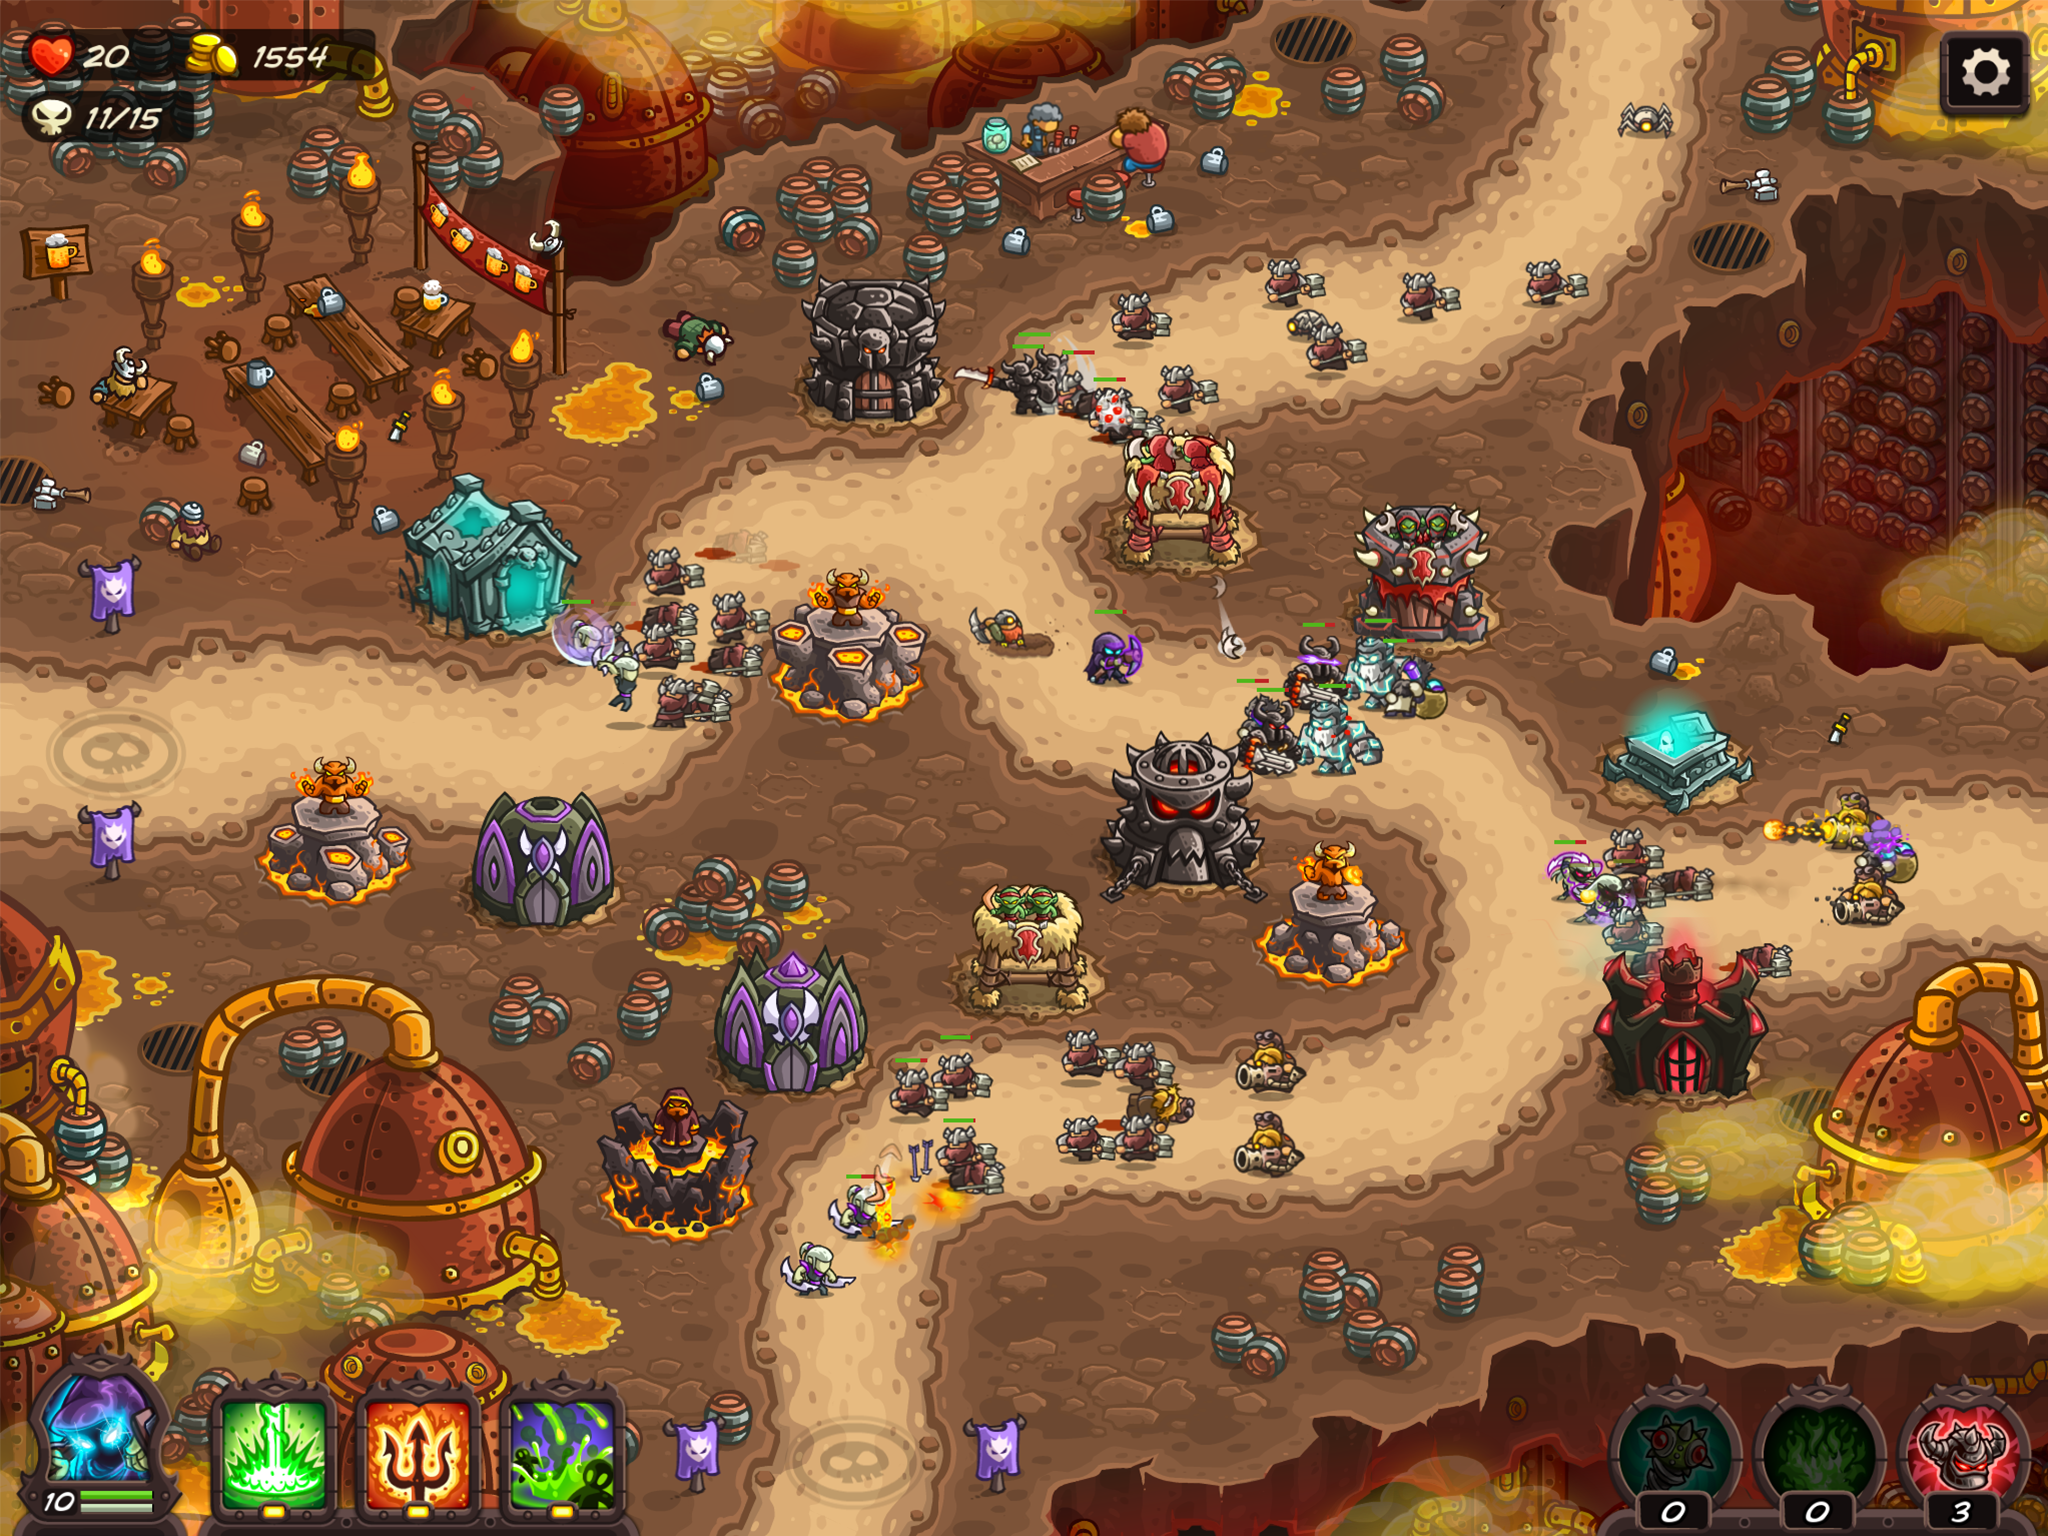 23 Best tower defense games on Android as of 2019 - Slant